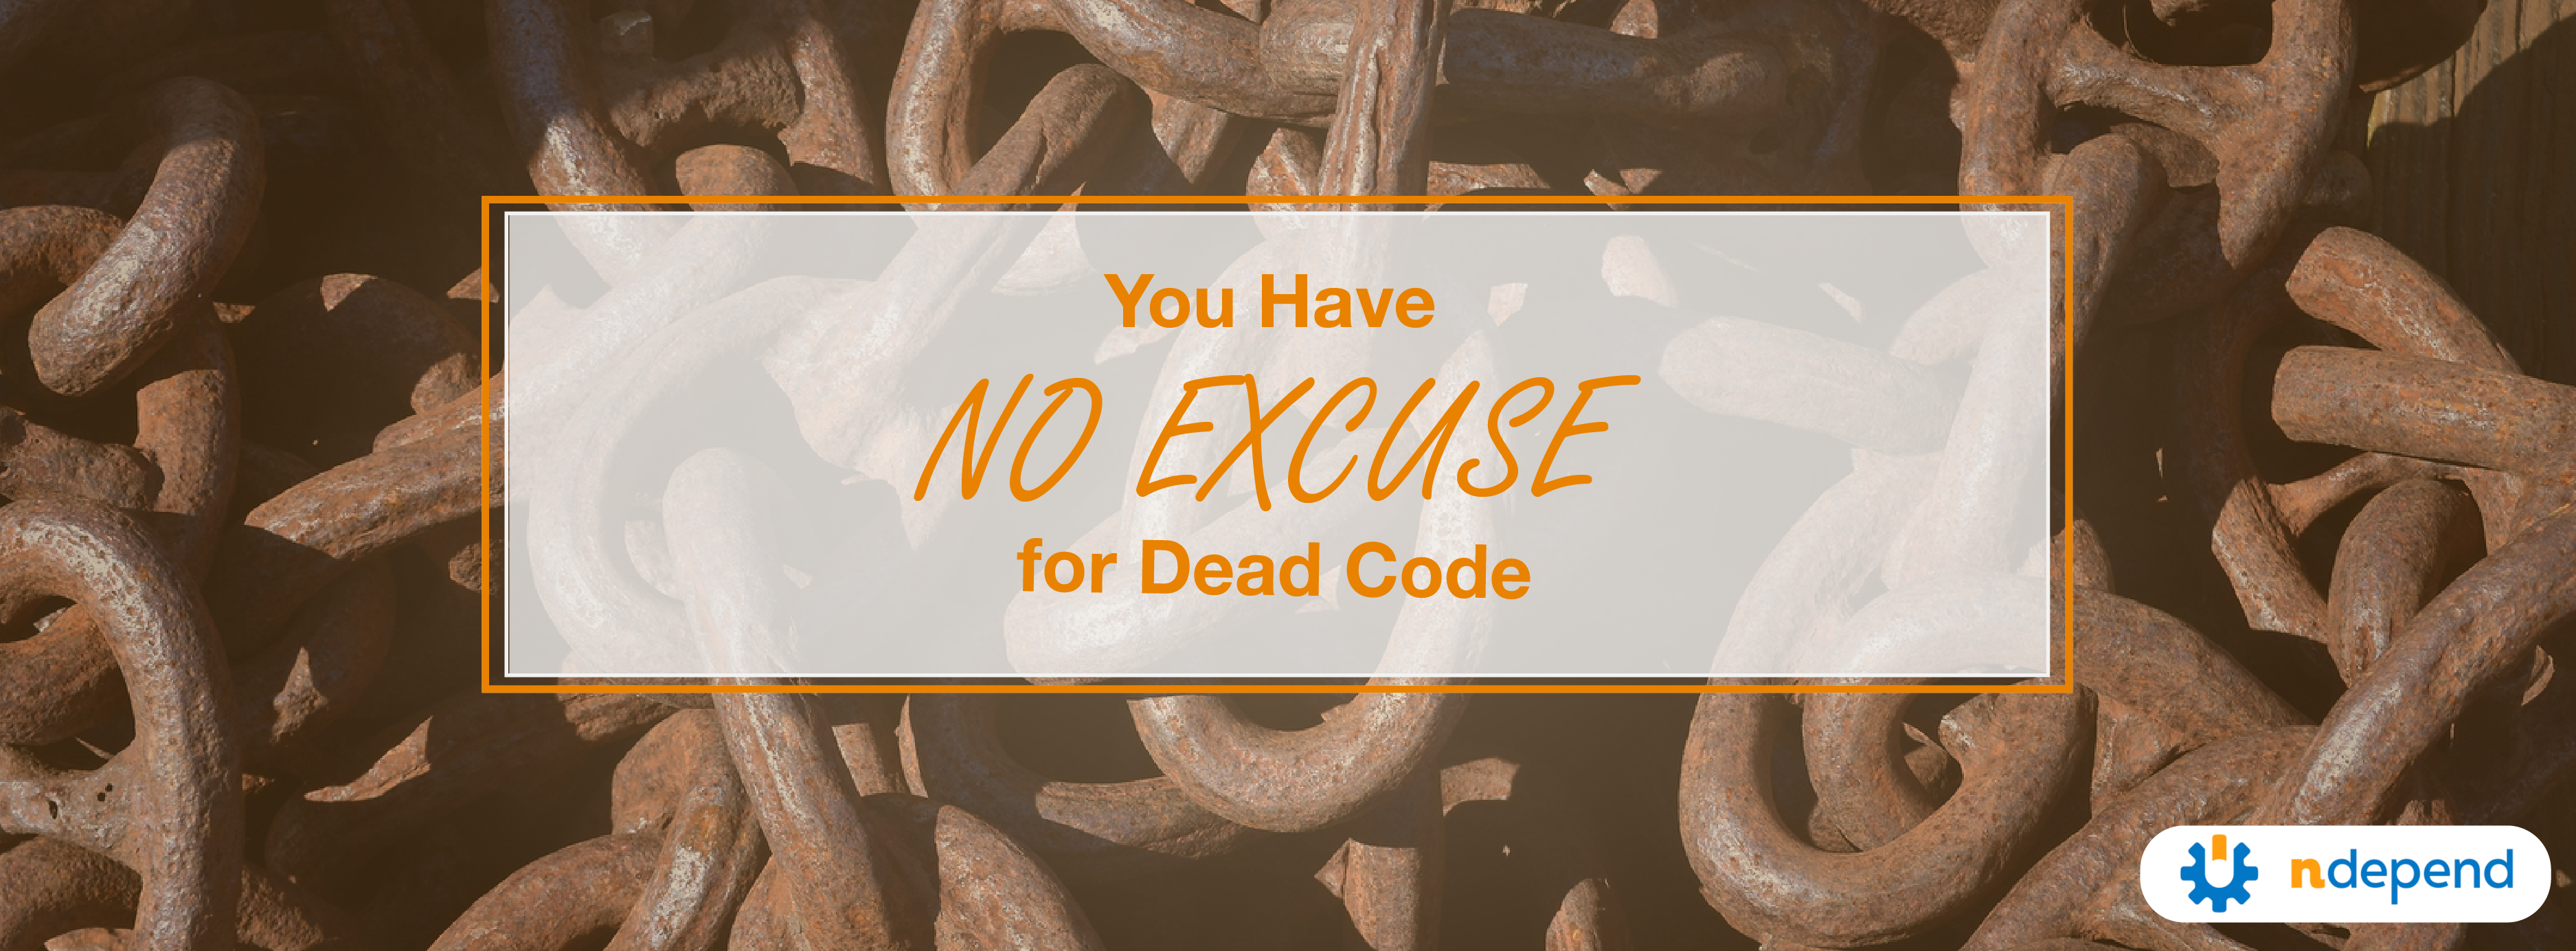 You Have No Excuse for Your Dead Code - NDepend